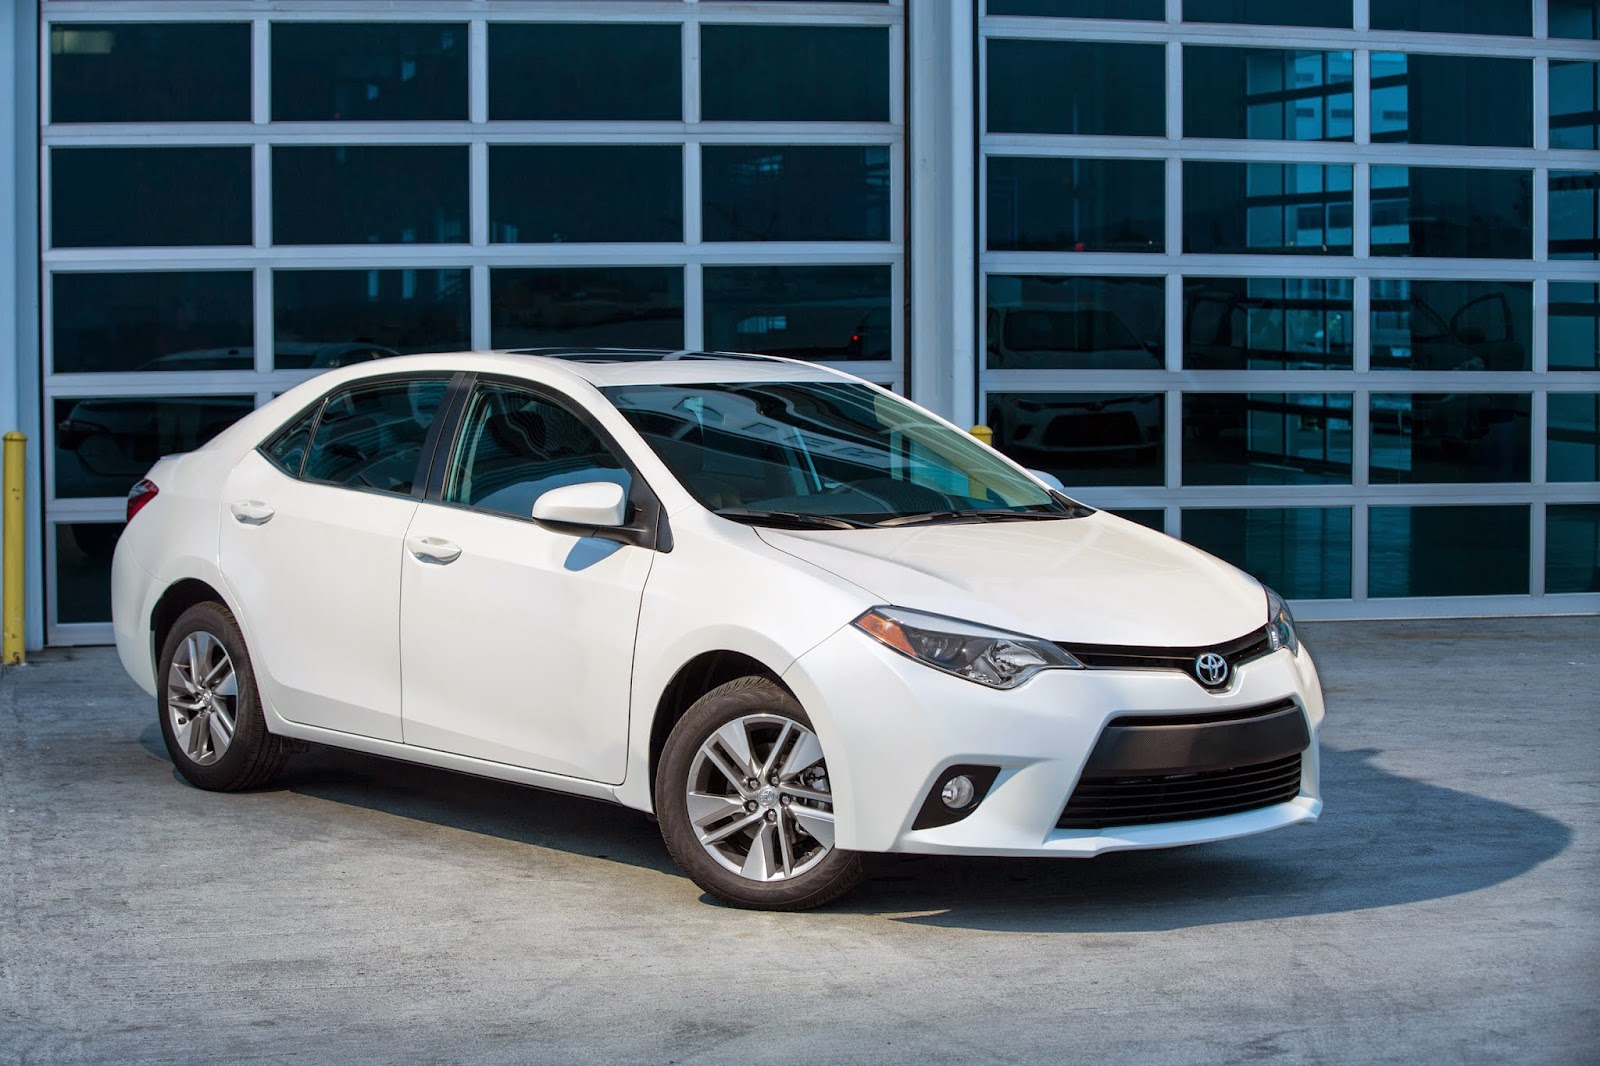 driver review first corolla original drive toyota and photo reviews car s le